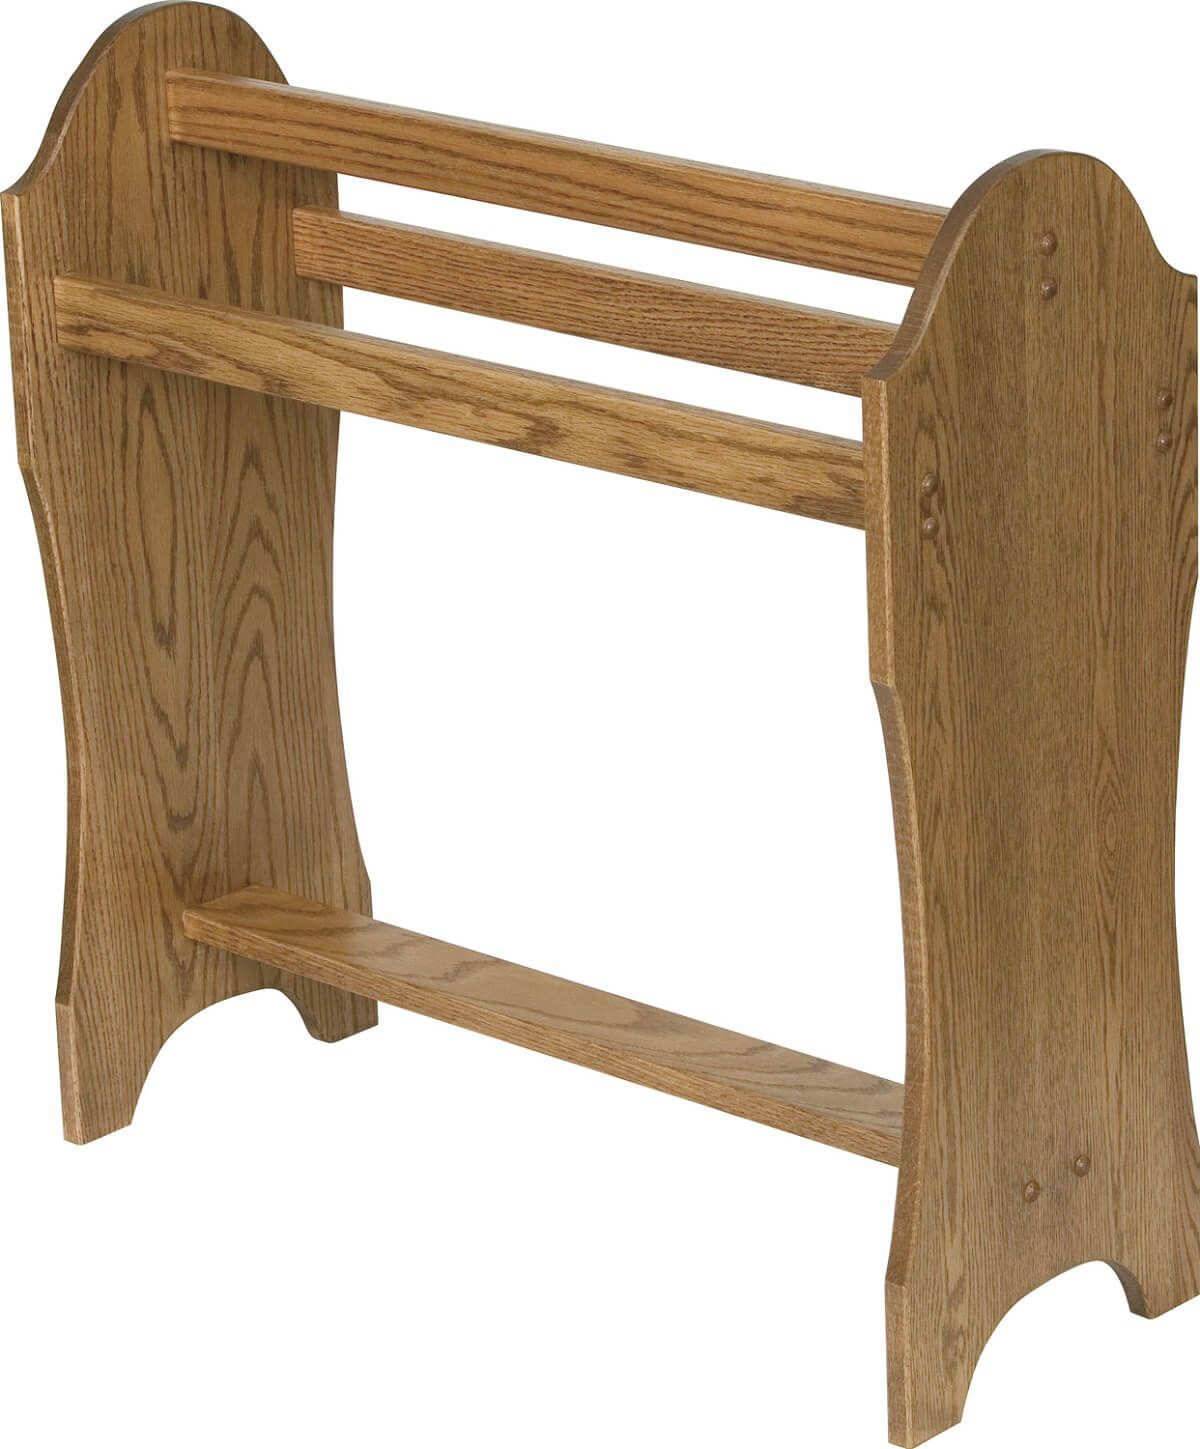 Ames Lake Quilt Rack in Oak